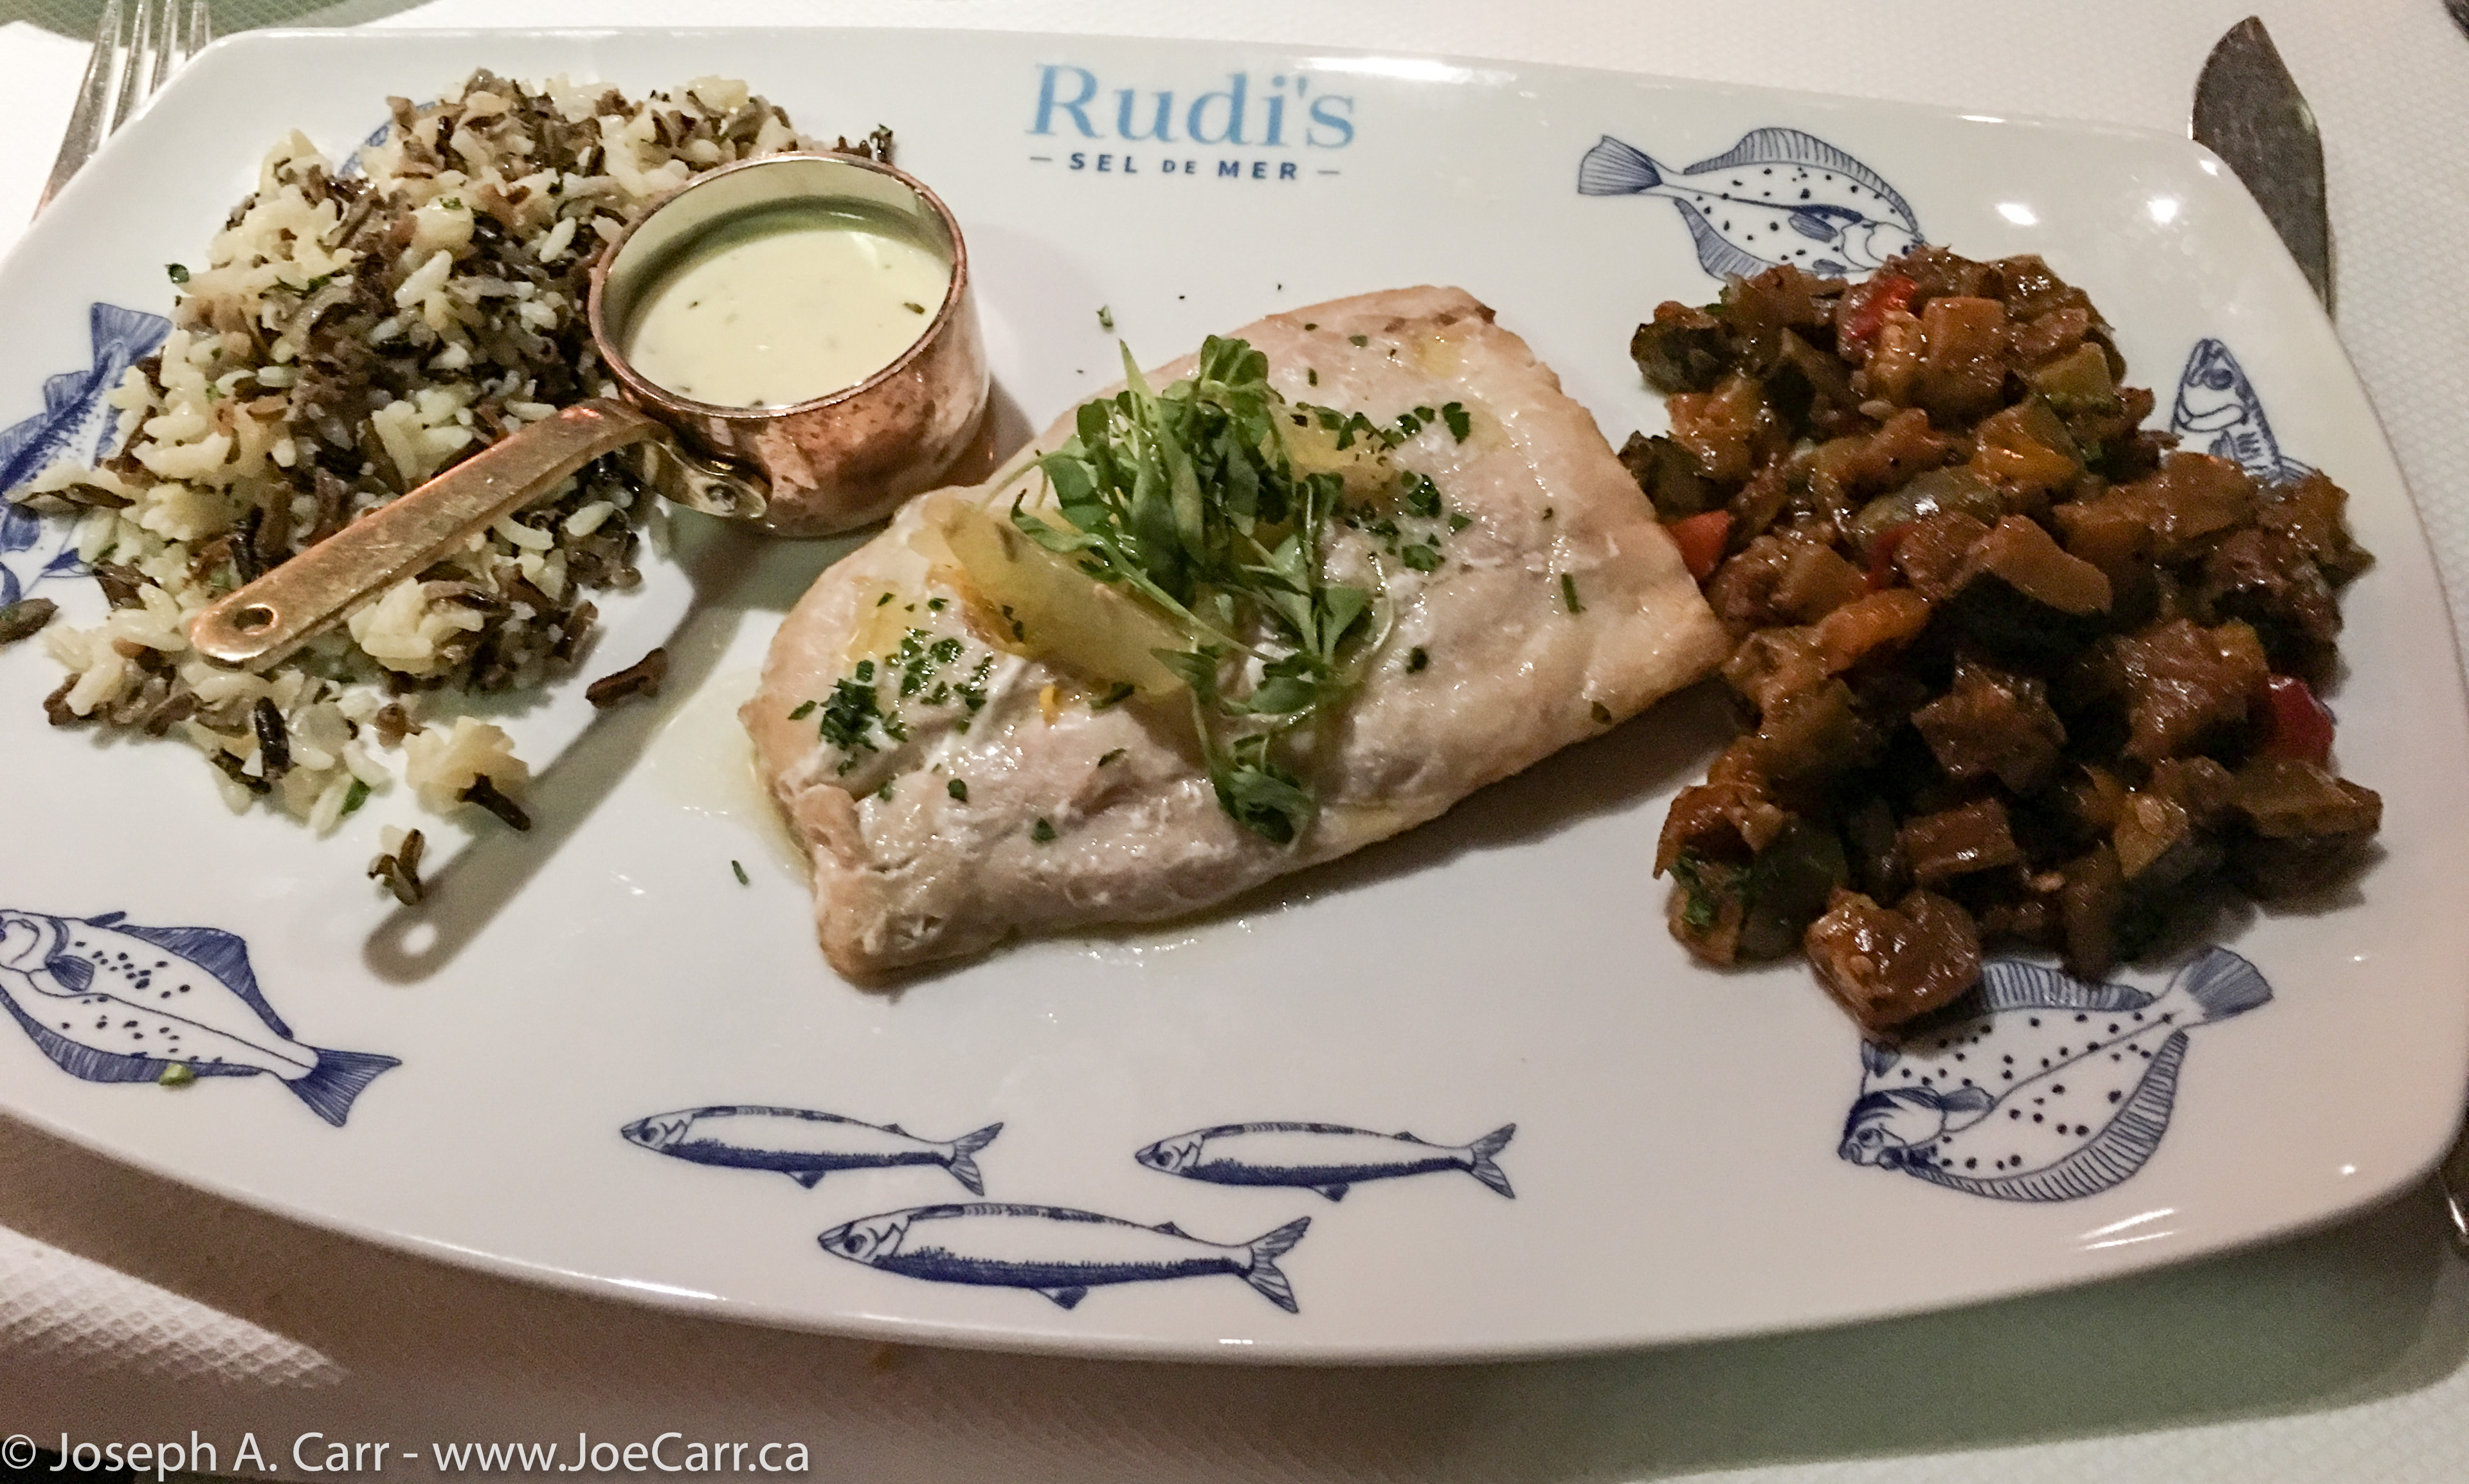 Salt Crust Baked Branzino with wild rice and ratatouille